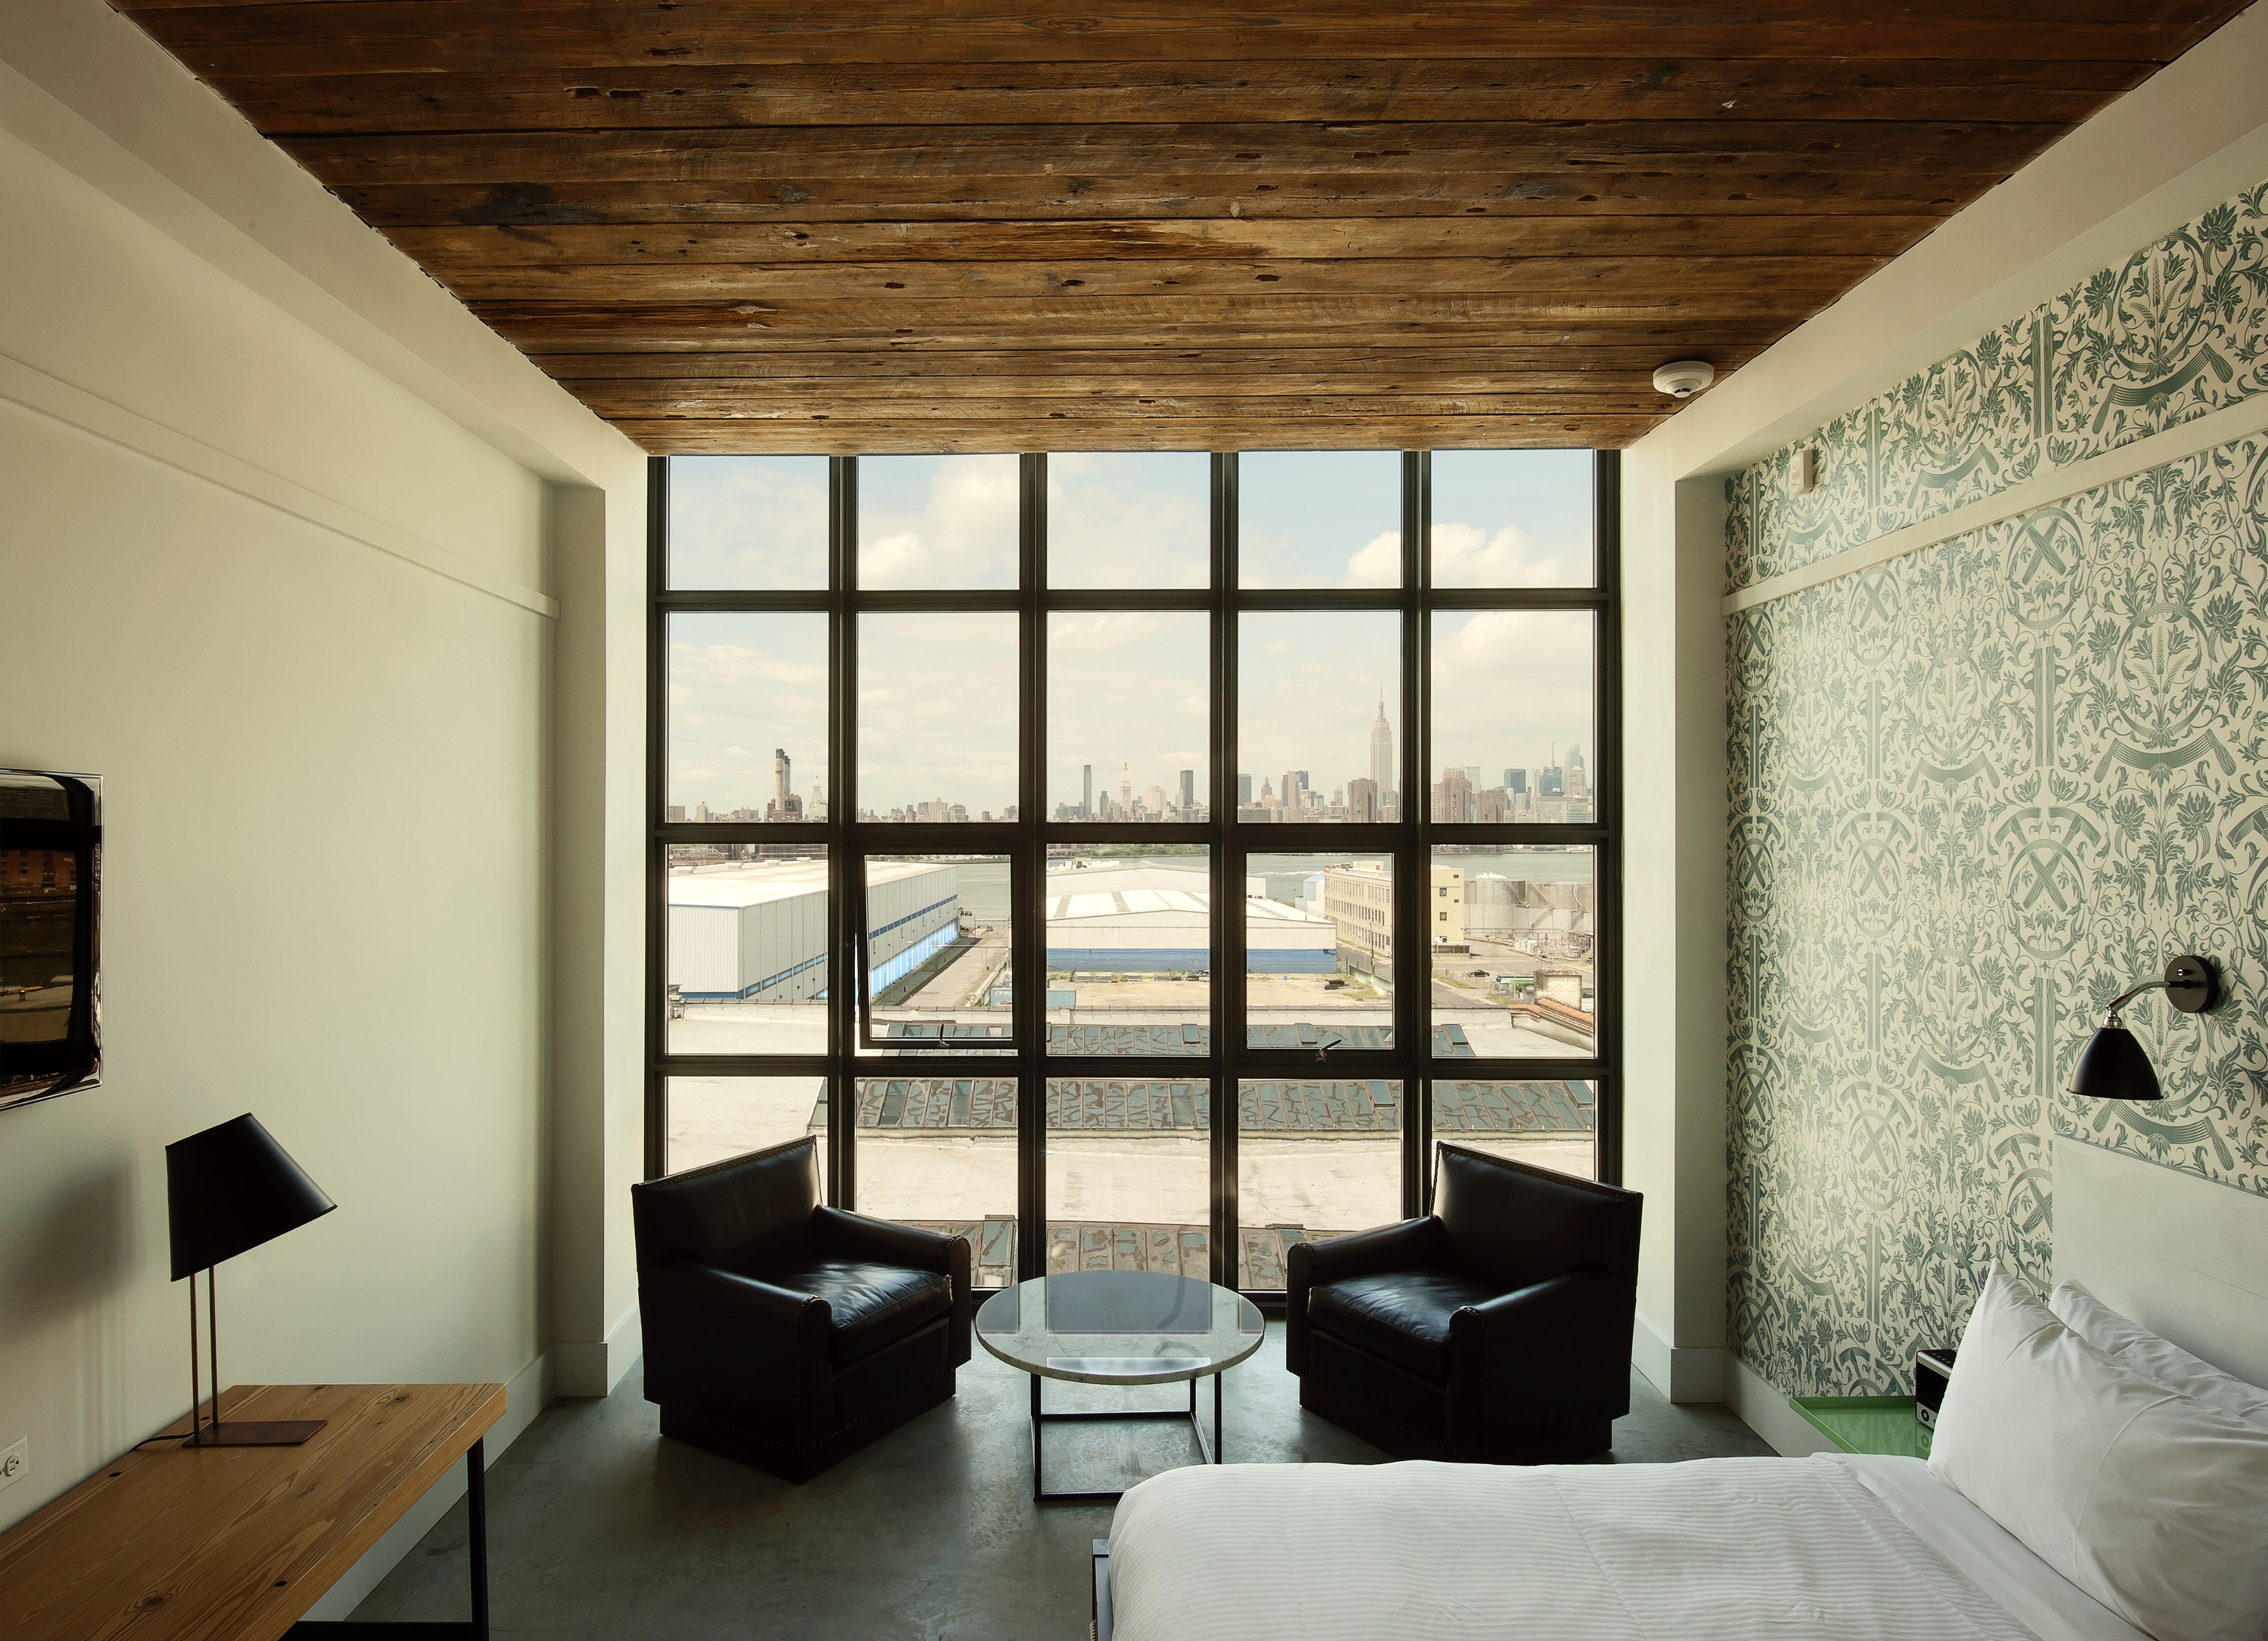 The best hotels in Brooklyn